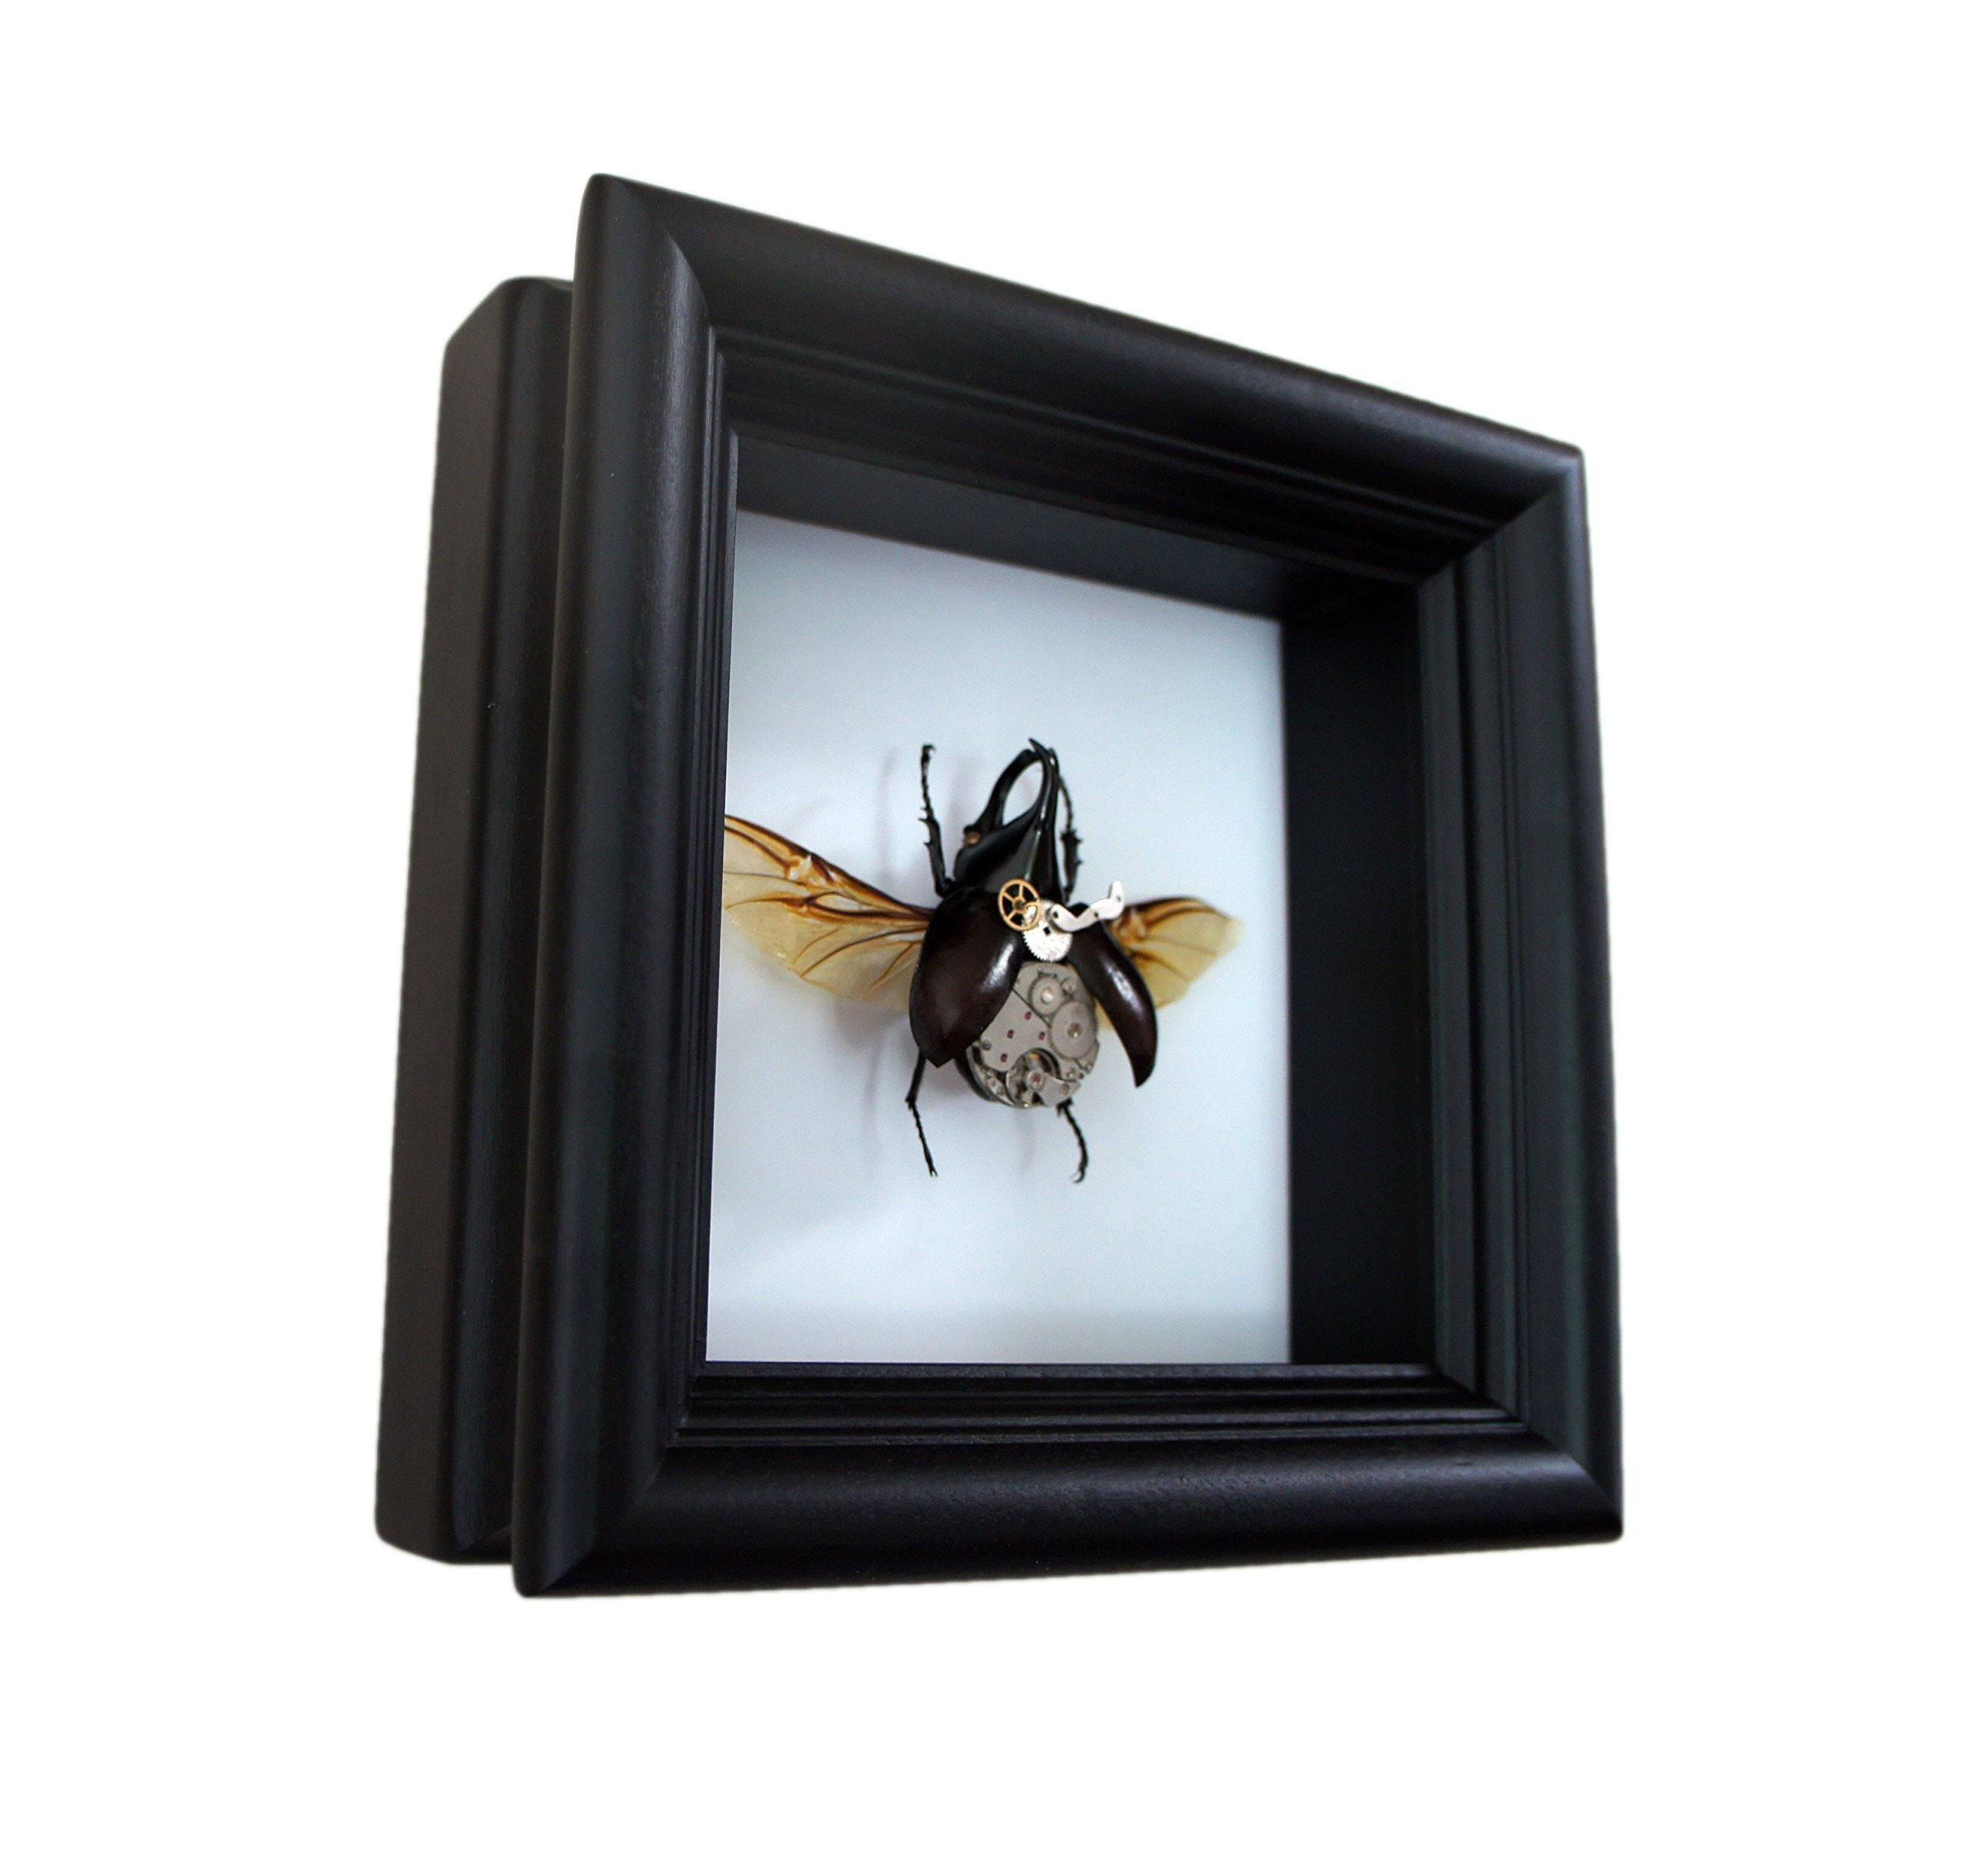 Real Steampunk Rhino Beetle Insect Taxidermy Display Shadow Box 5